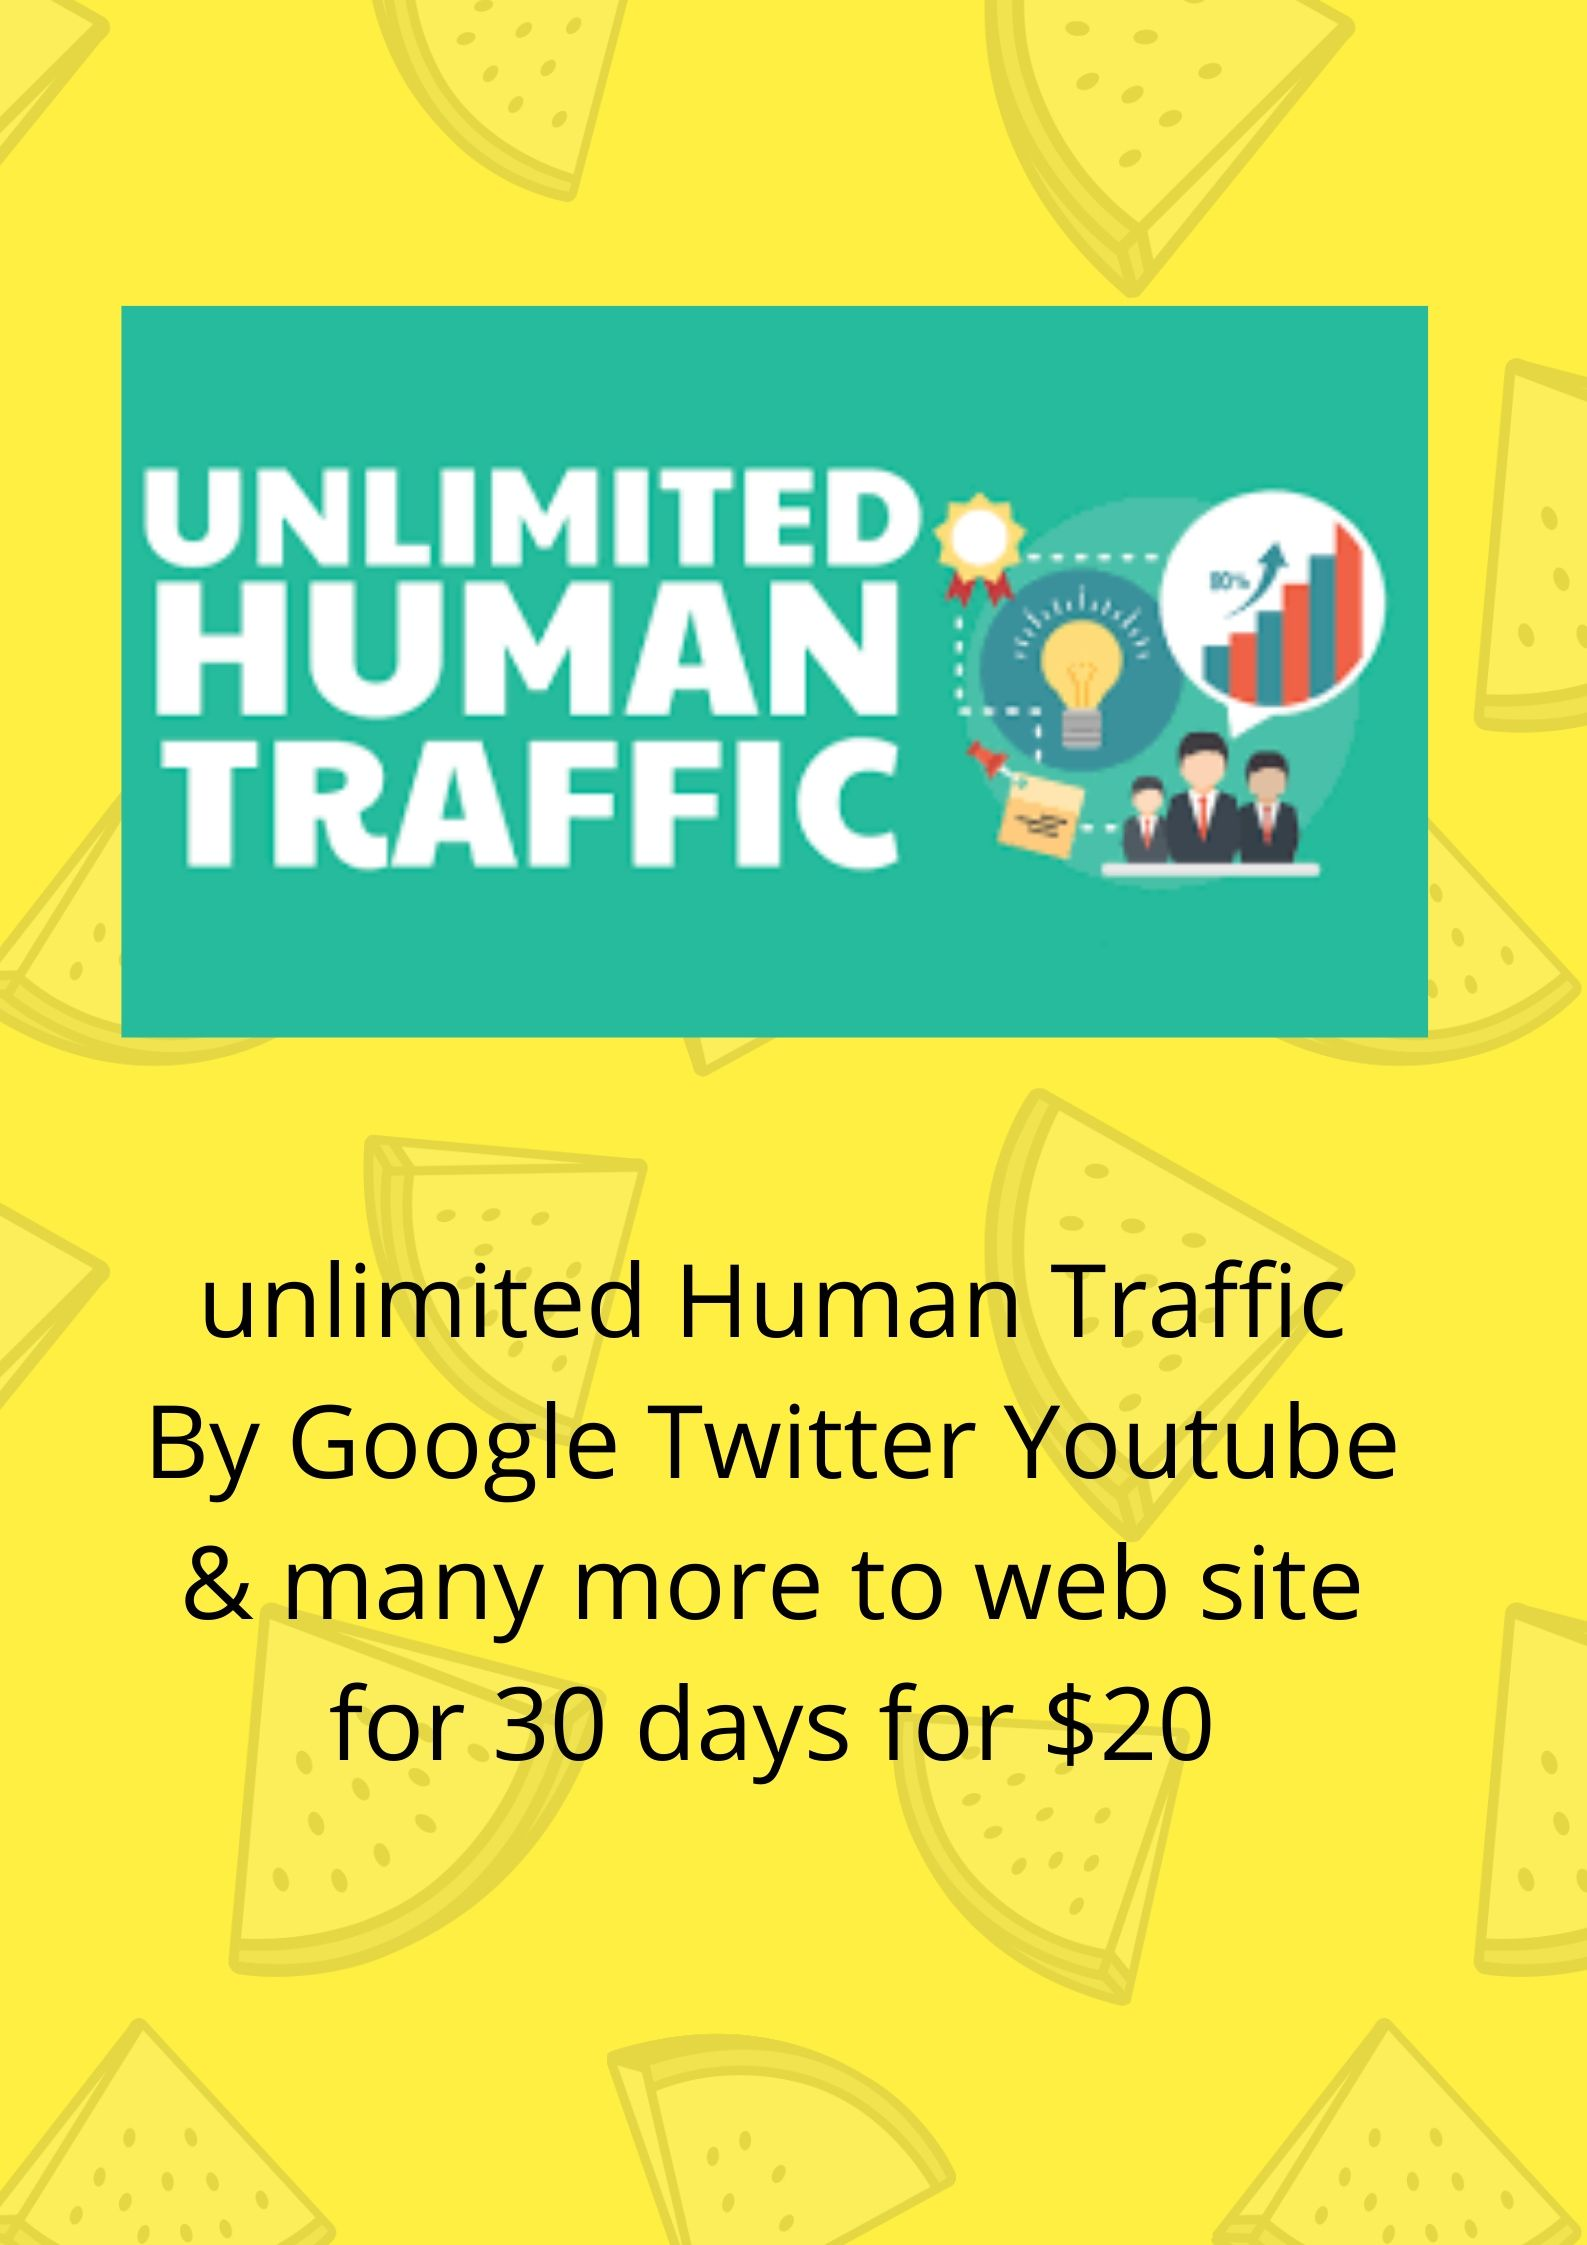 UNLIMITED HUMAN TRAFFIC by GOOGLE, TWITTER. YOUTUBE & many more.